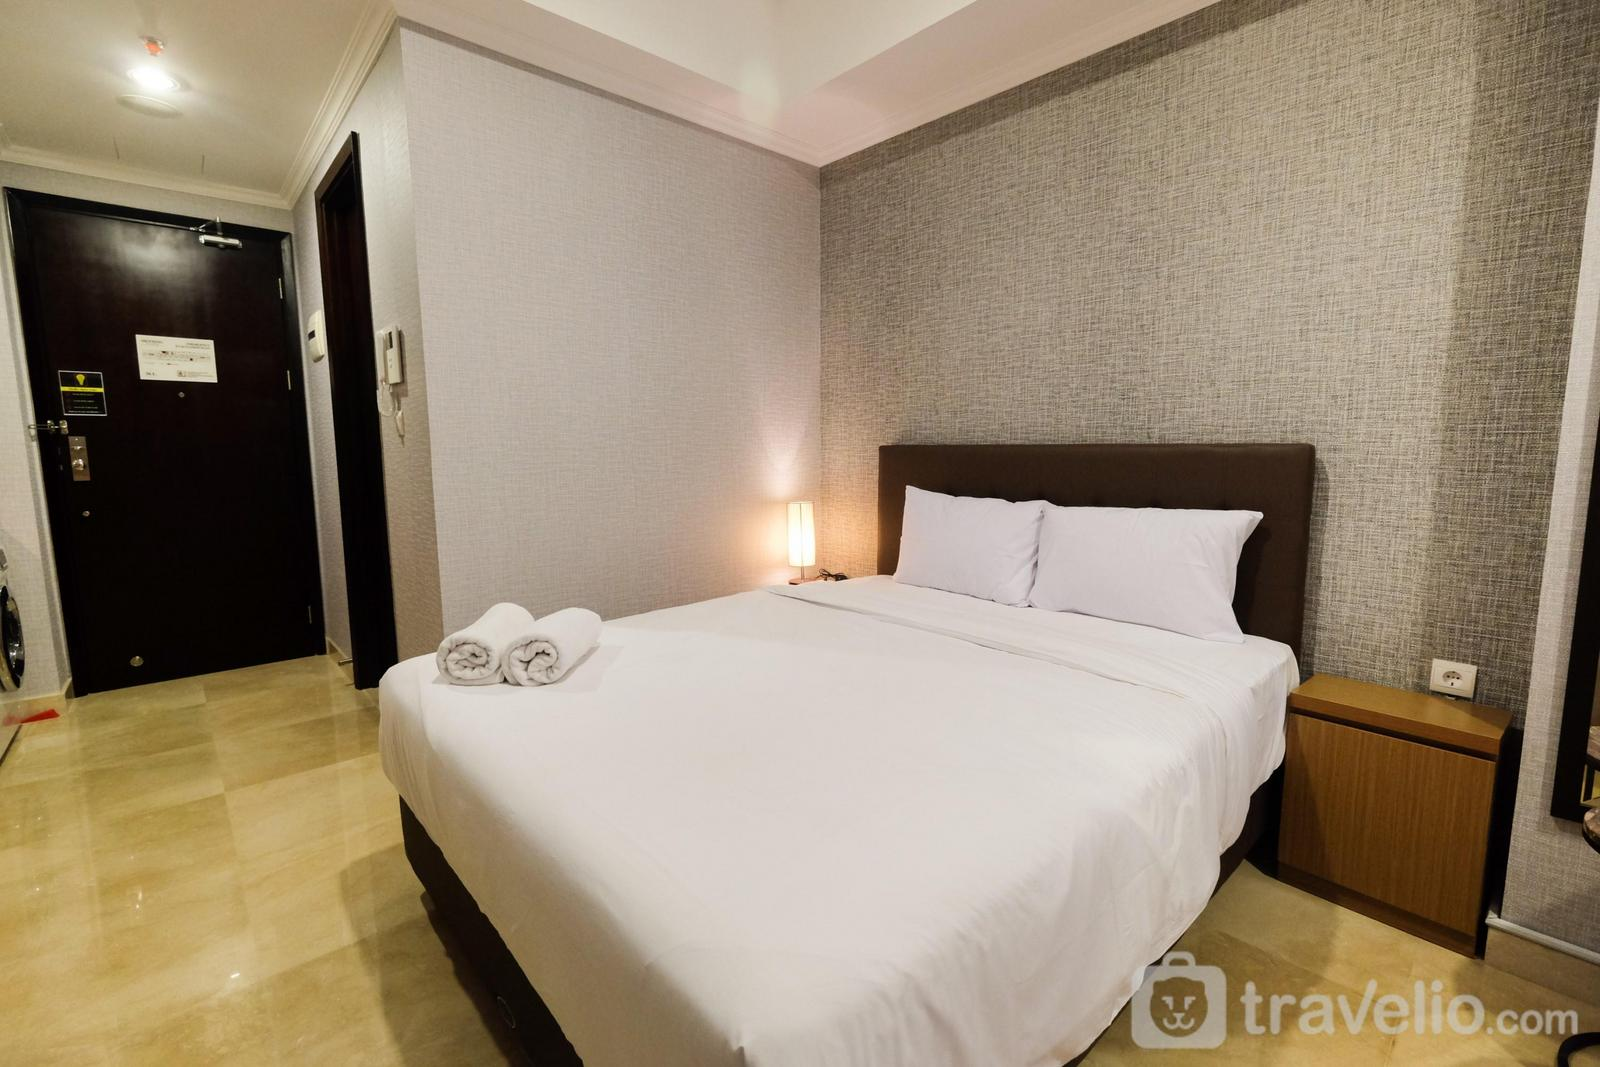 Menteng Park Apartment - Luxurious Studio at Menteng Park Apartment By Travelio